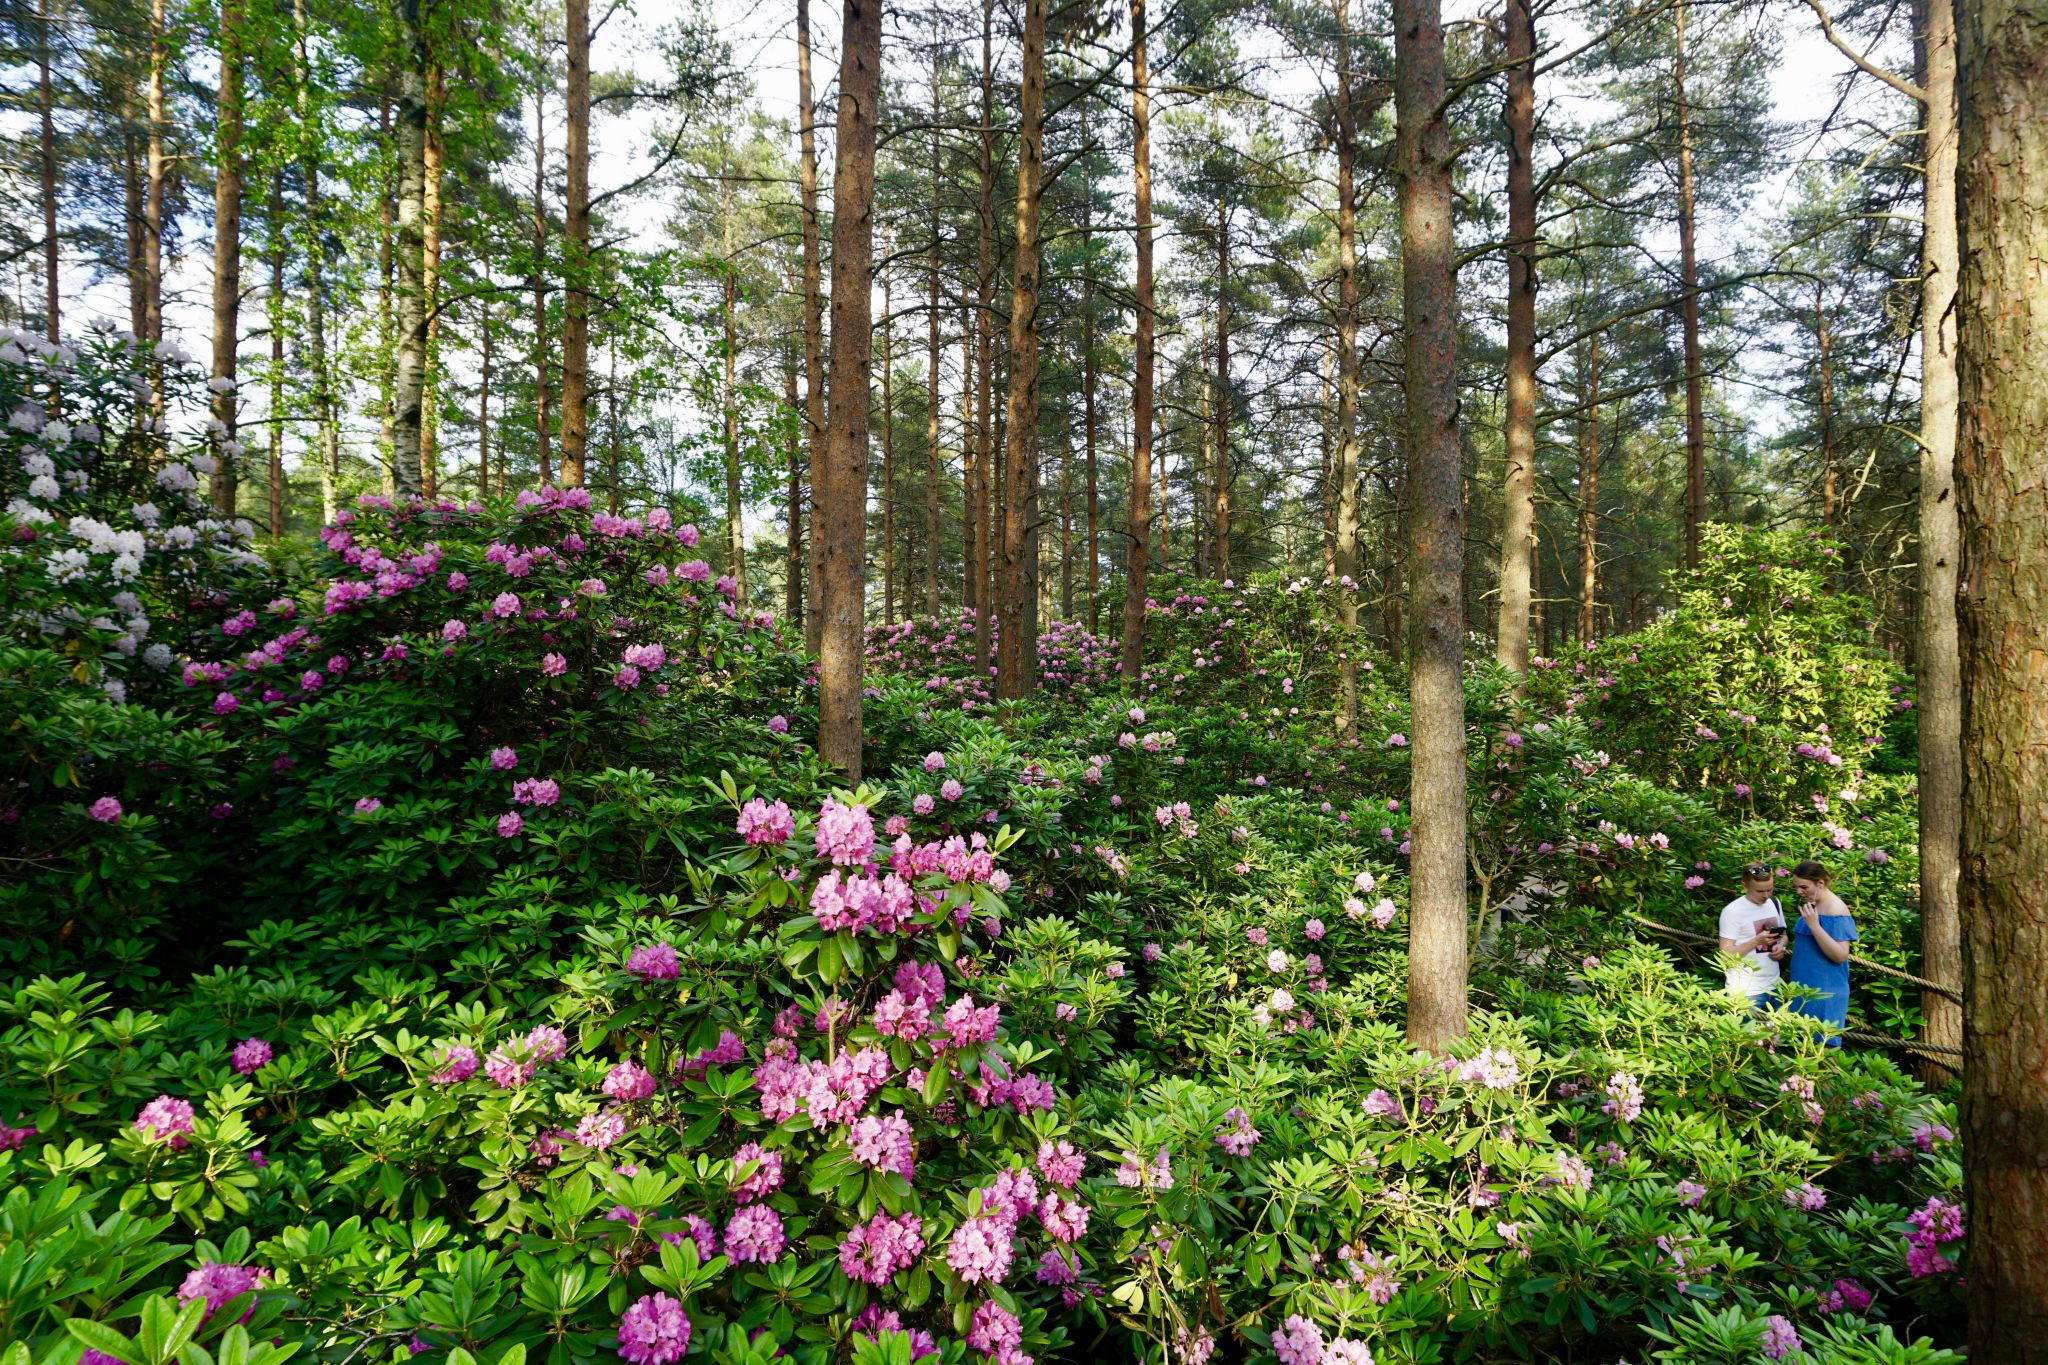 Visiting the Rhododendron Park in Helsinki is a must for all flower enthusiasts